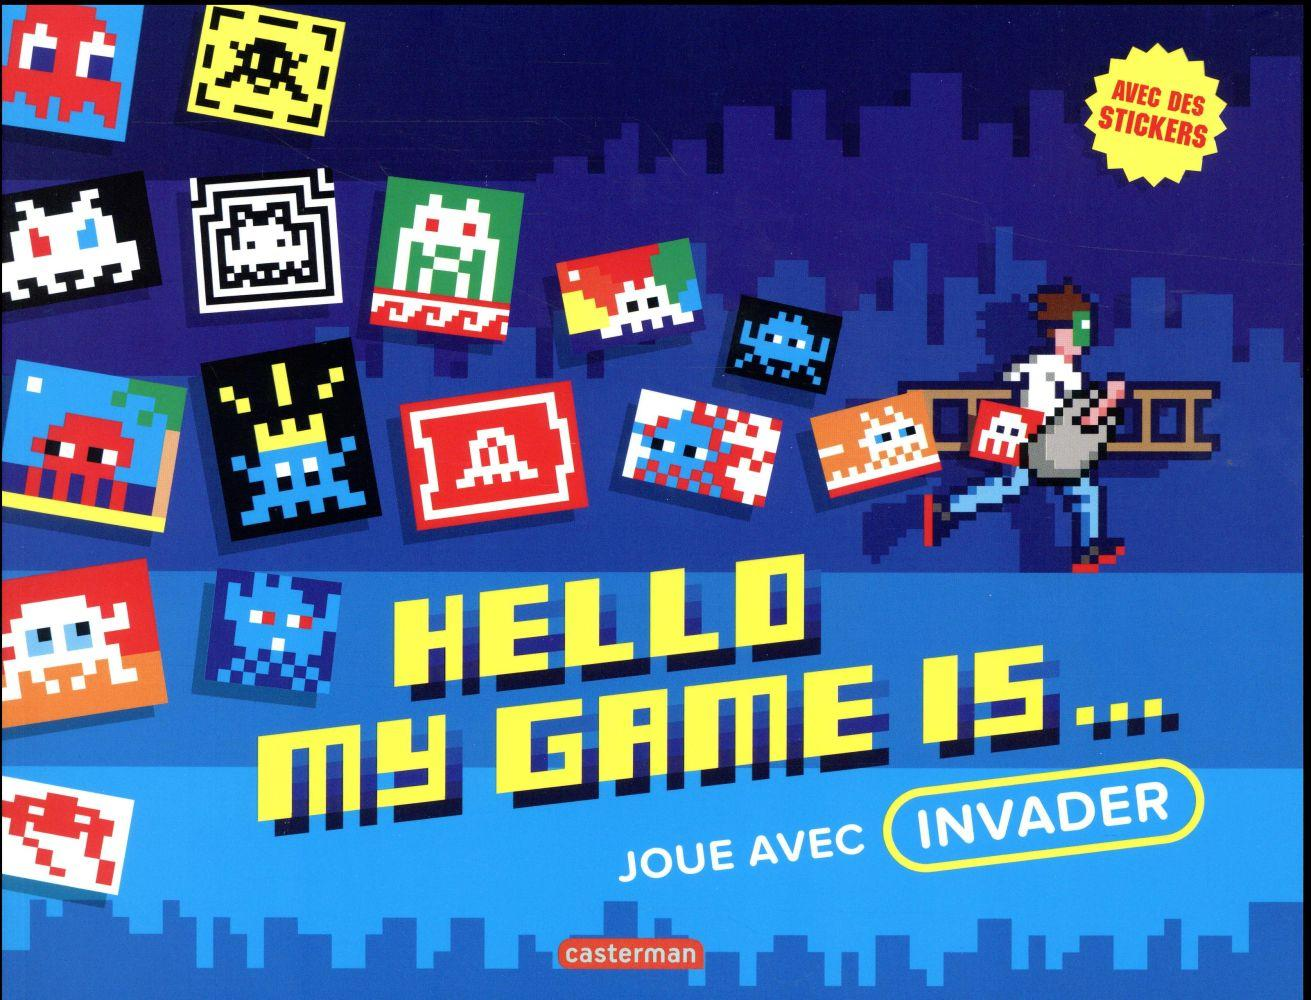 Hello my game is... joue avec invader  - Invader